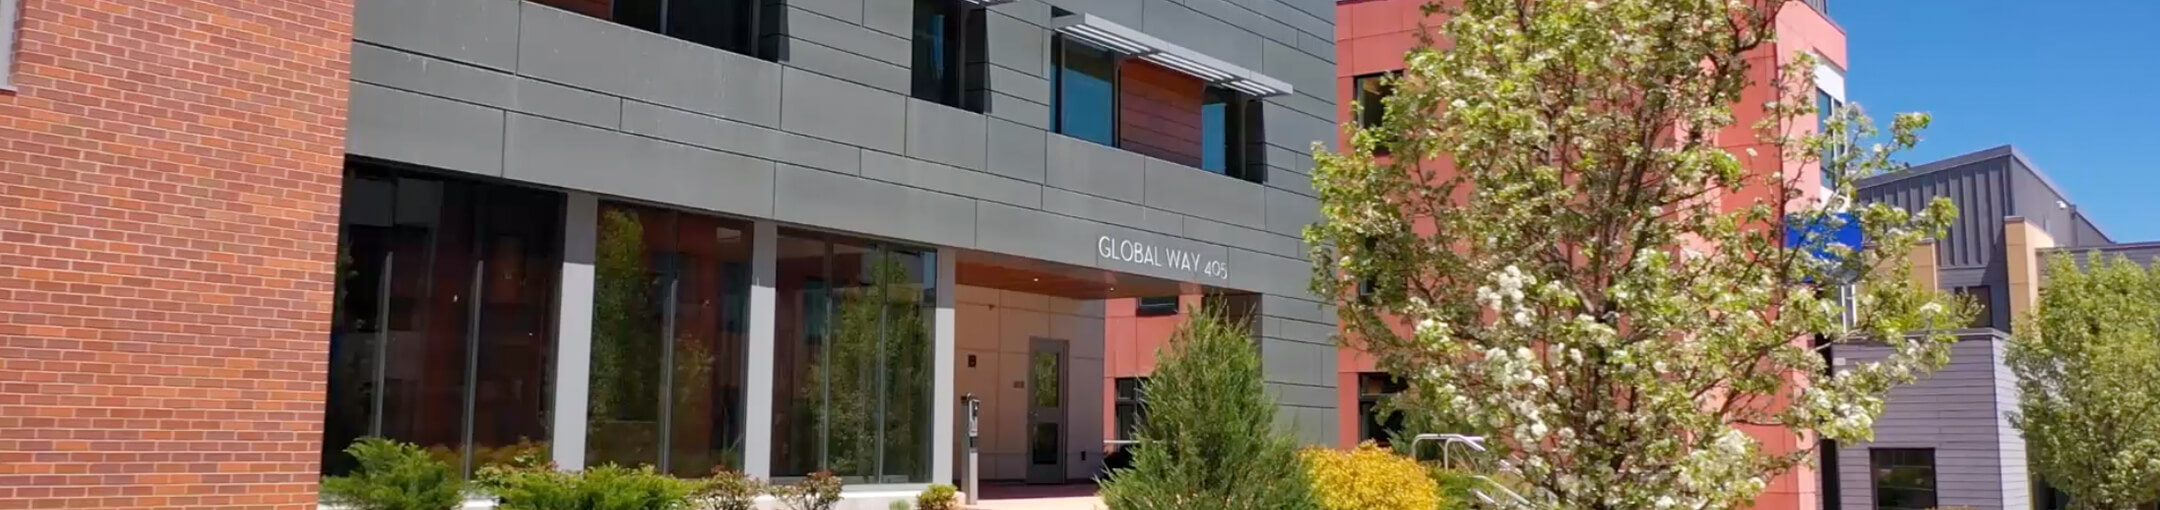 Global Village on-campus apartments at RIT